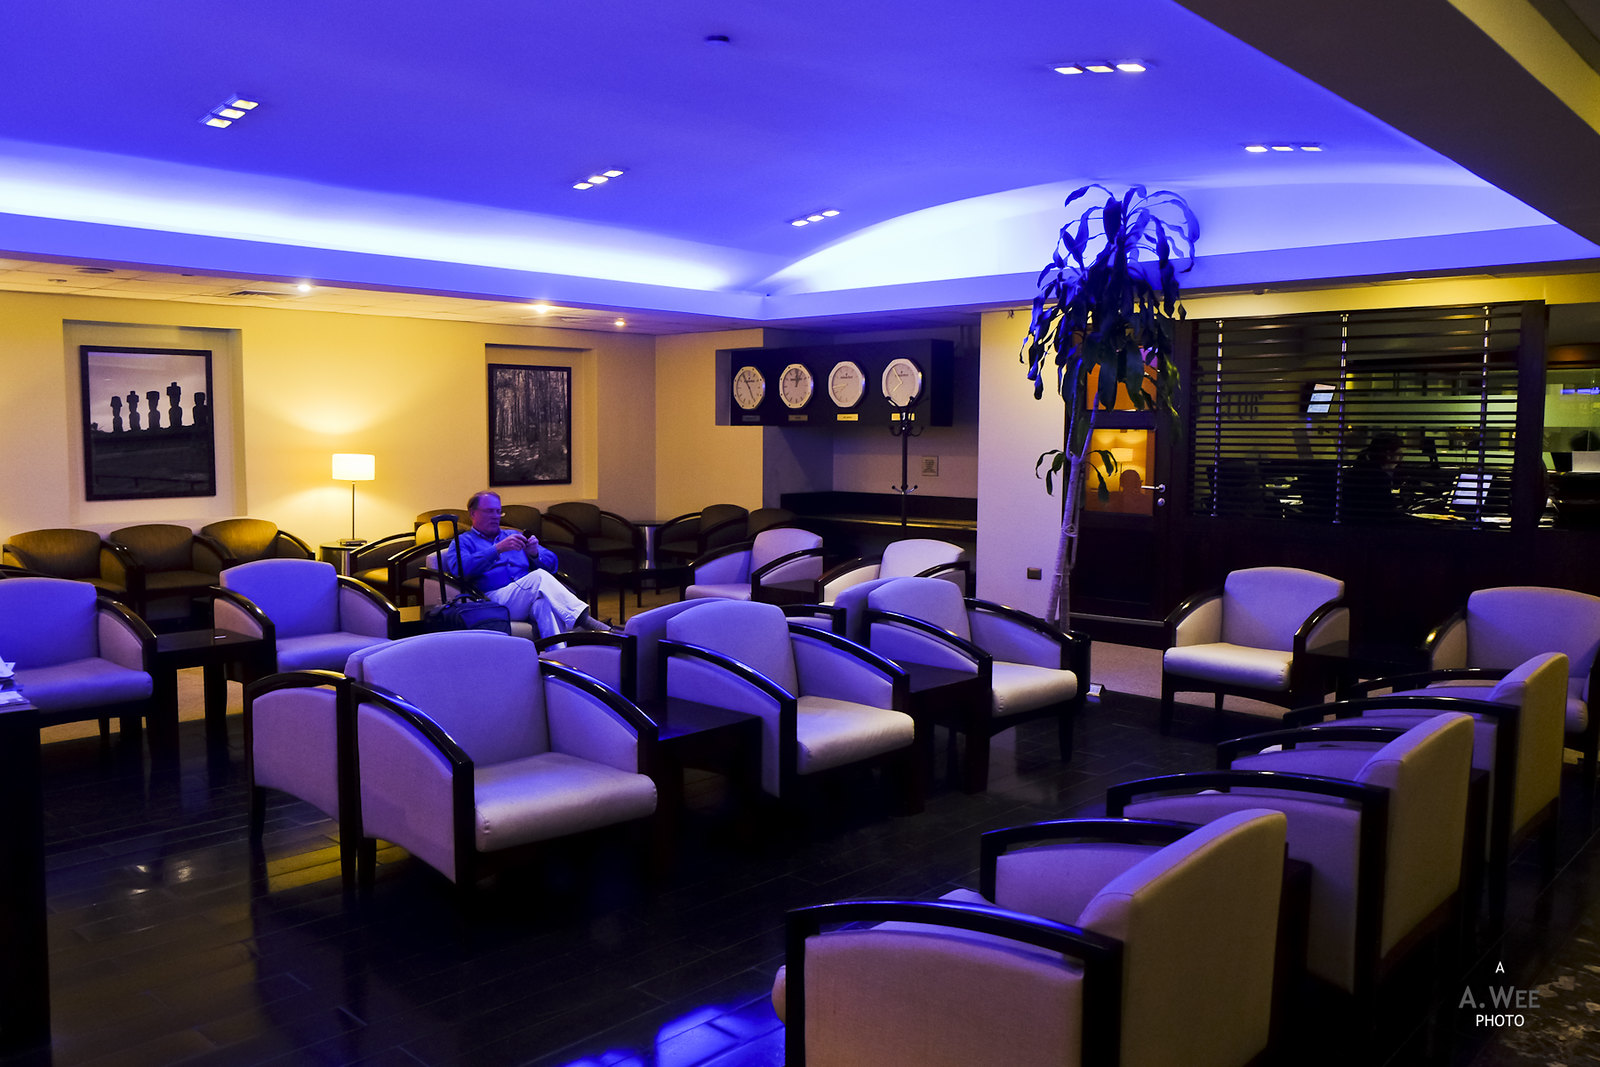 Blue hues at the lounge